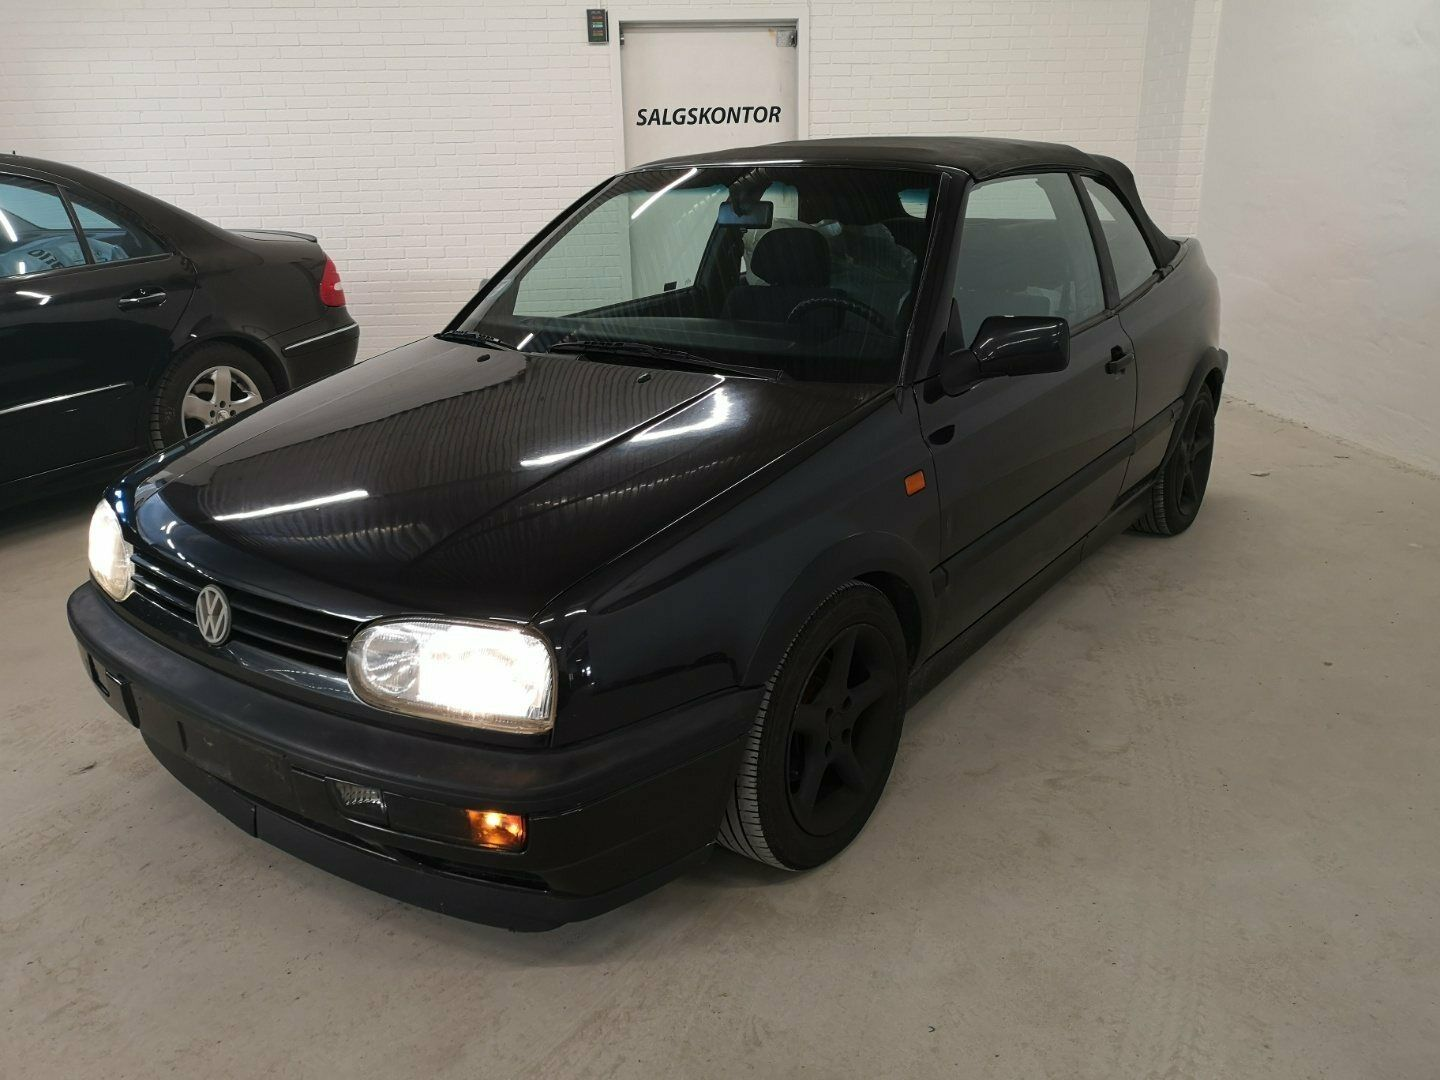 VW Golf III 1,8 Cabriolet 2d